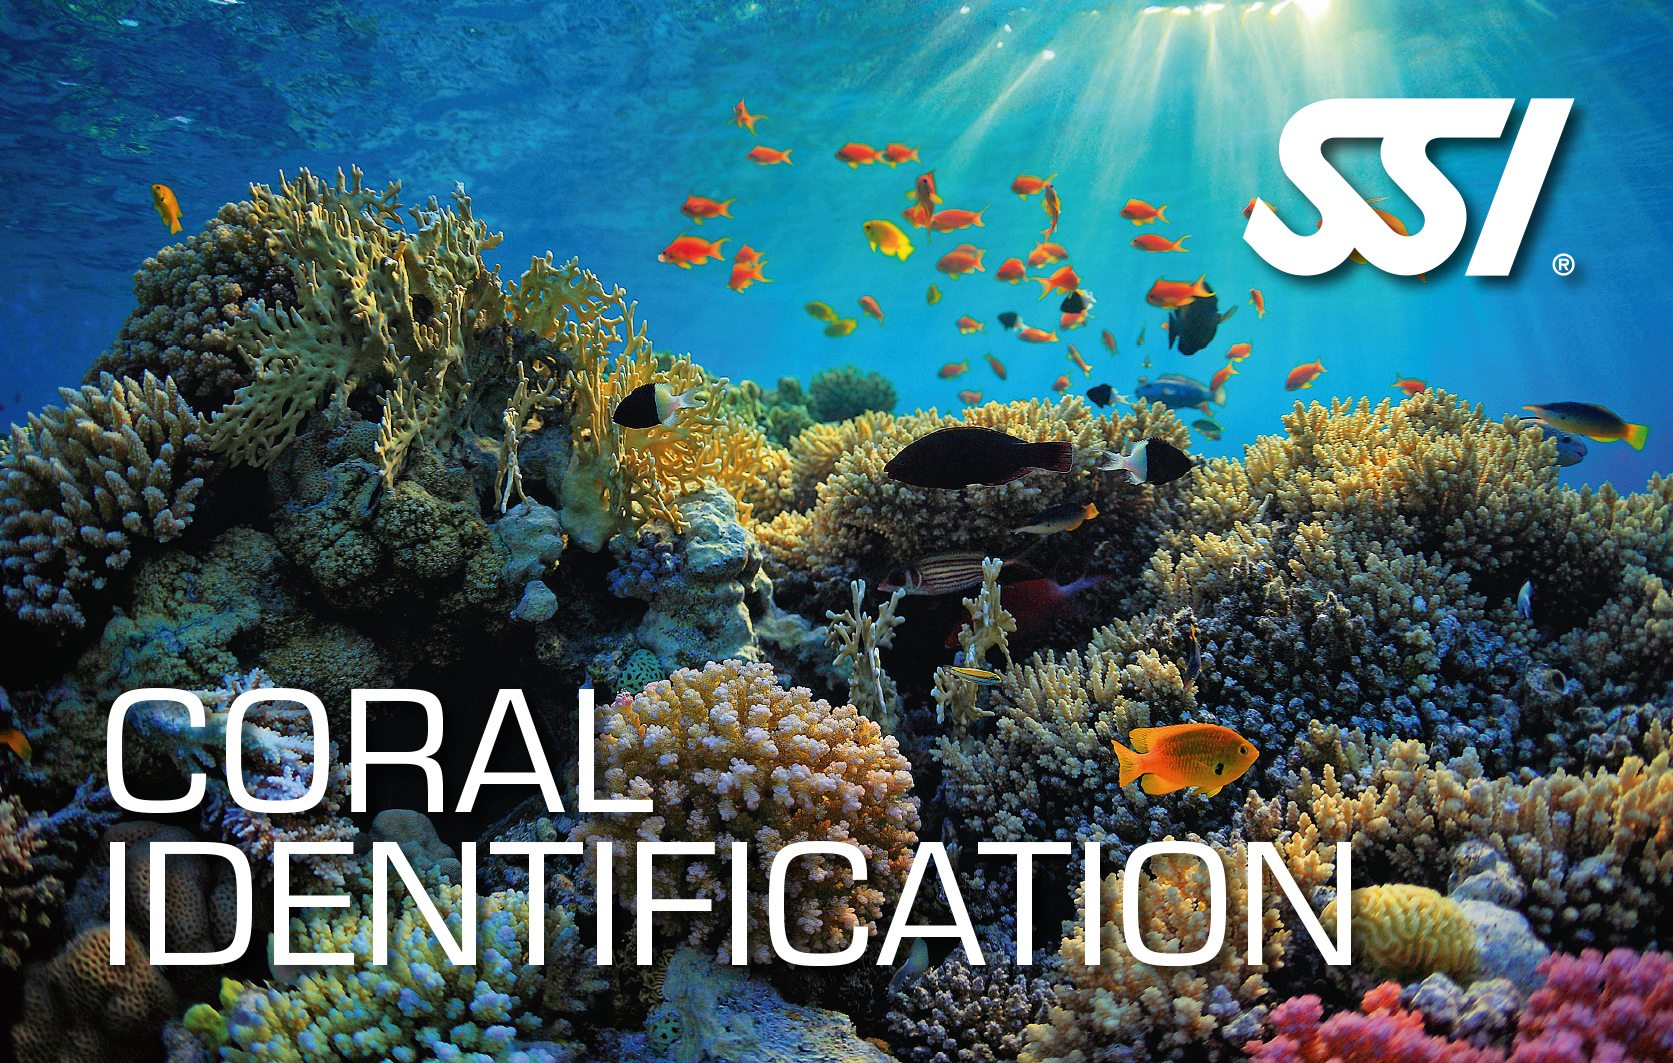 SSI Coral Identification Course | SSI Coral Identification | Coral Identification | Deep Blue Scuba | Scuba Course